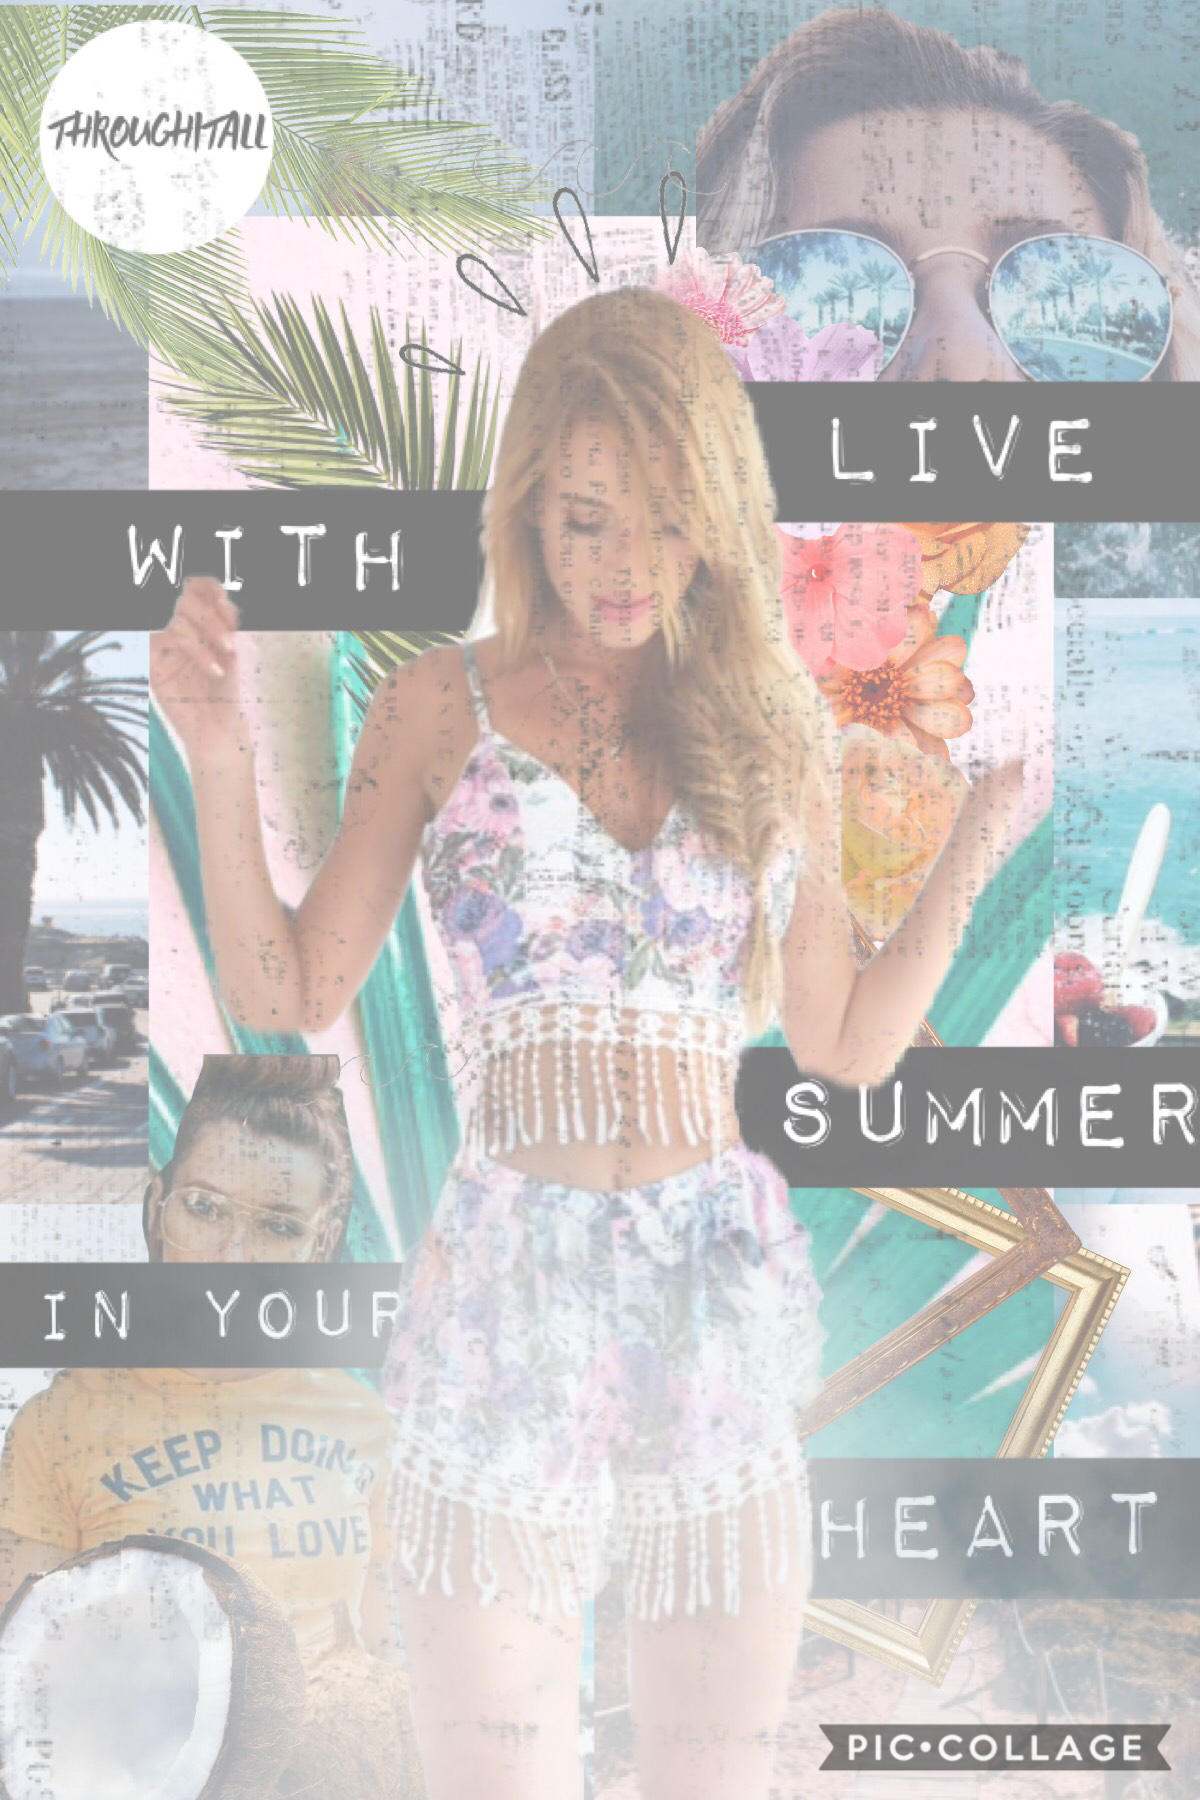 Tap Ahhh finally a summer themed collage 🏝